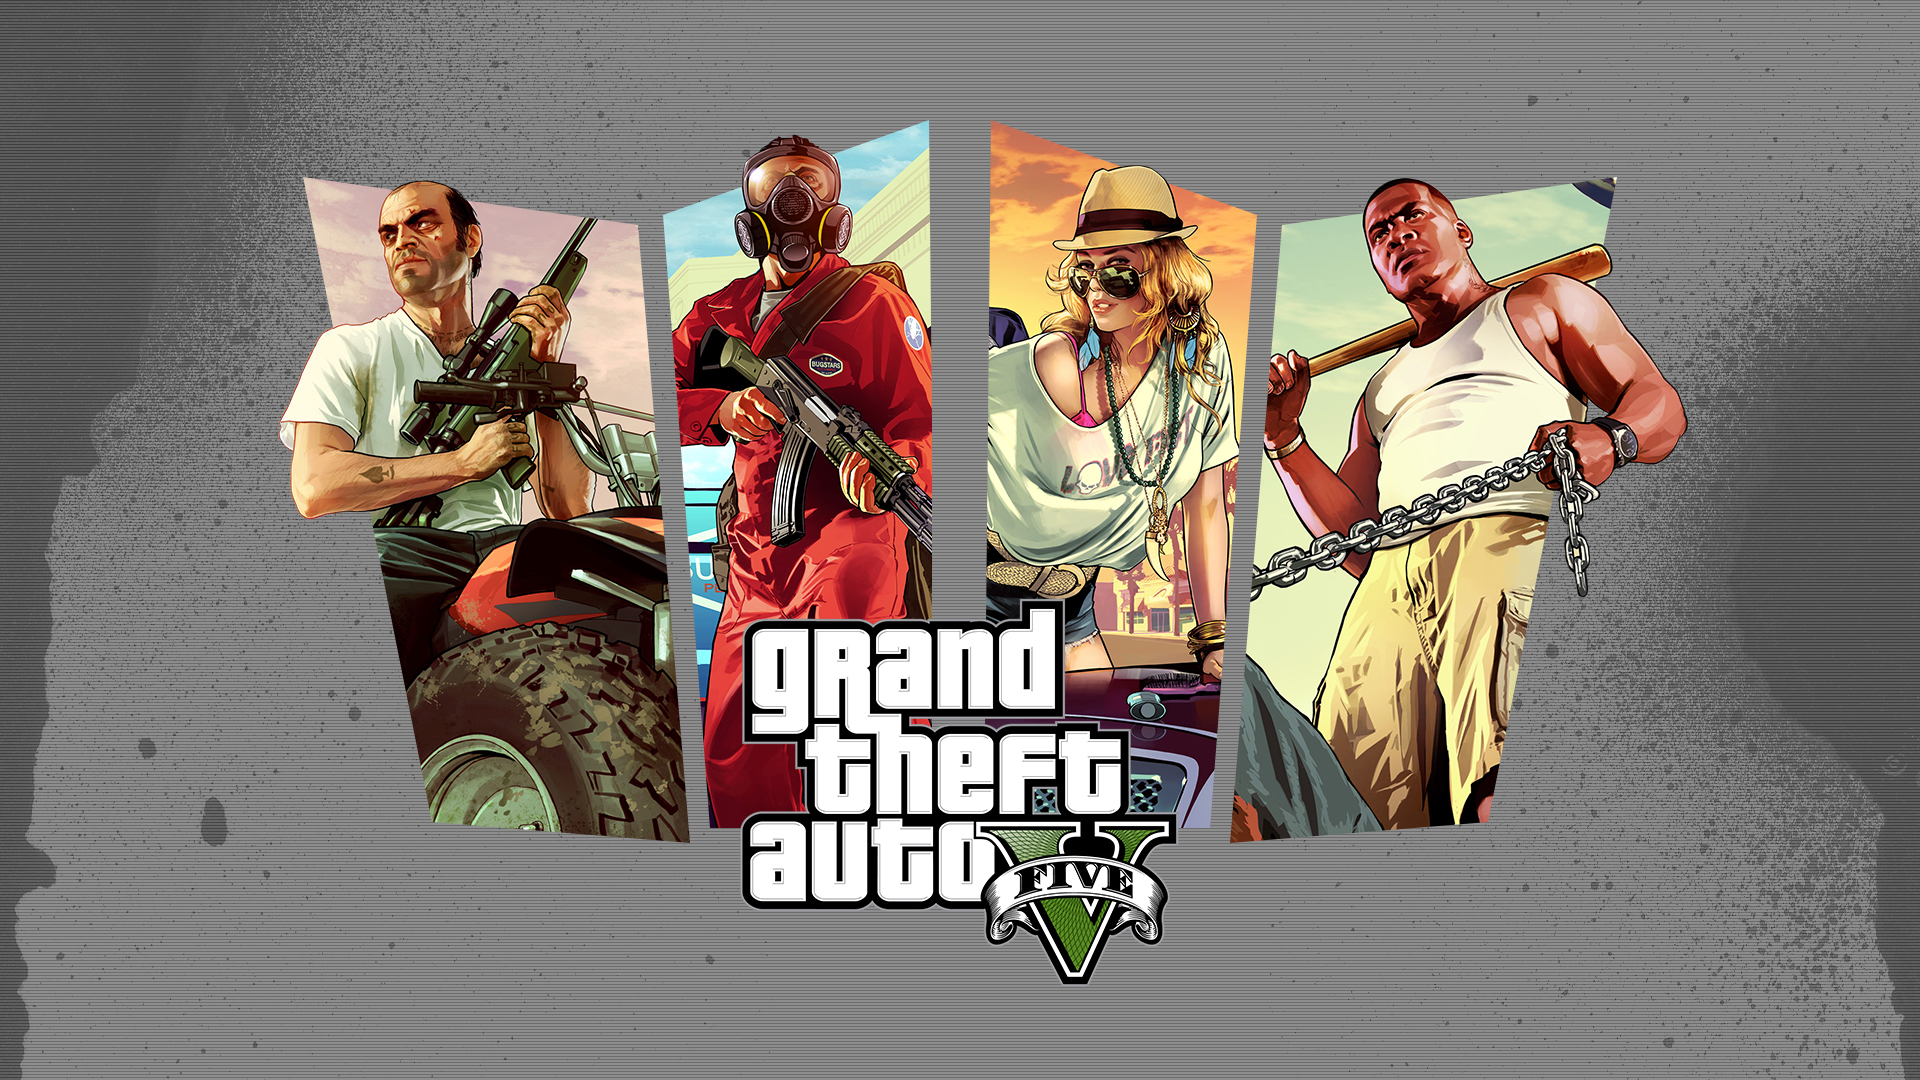 Grand Theft Auto V 2013 Wallpaper (1920x1080) by ...